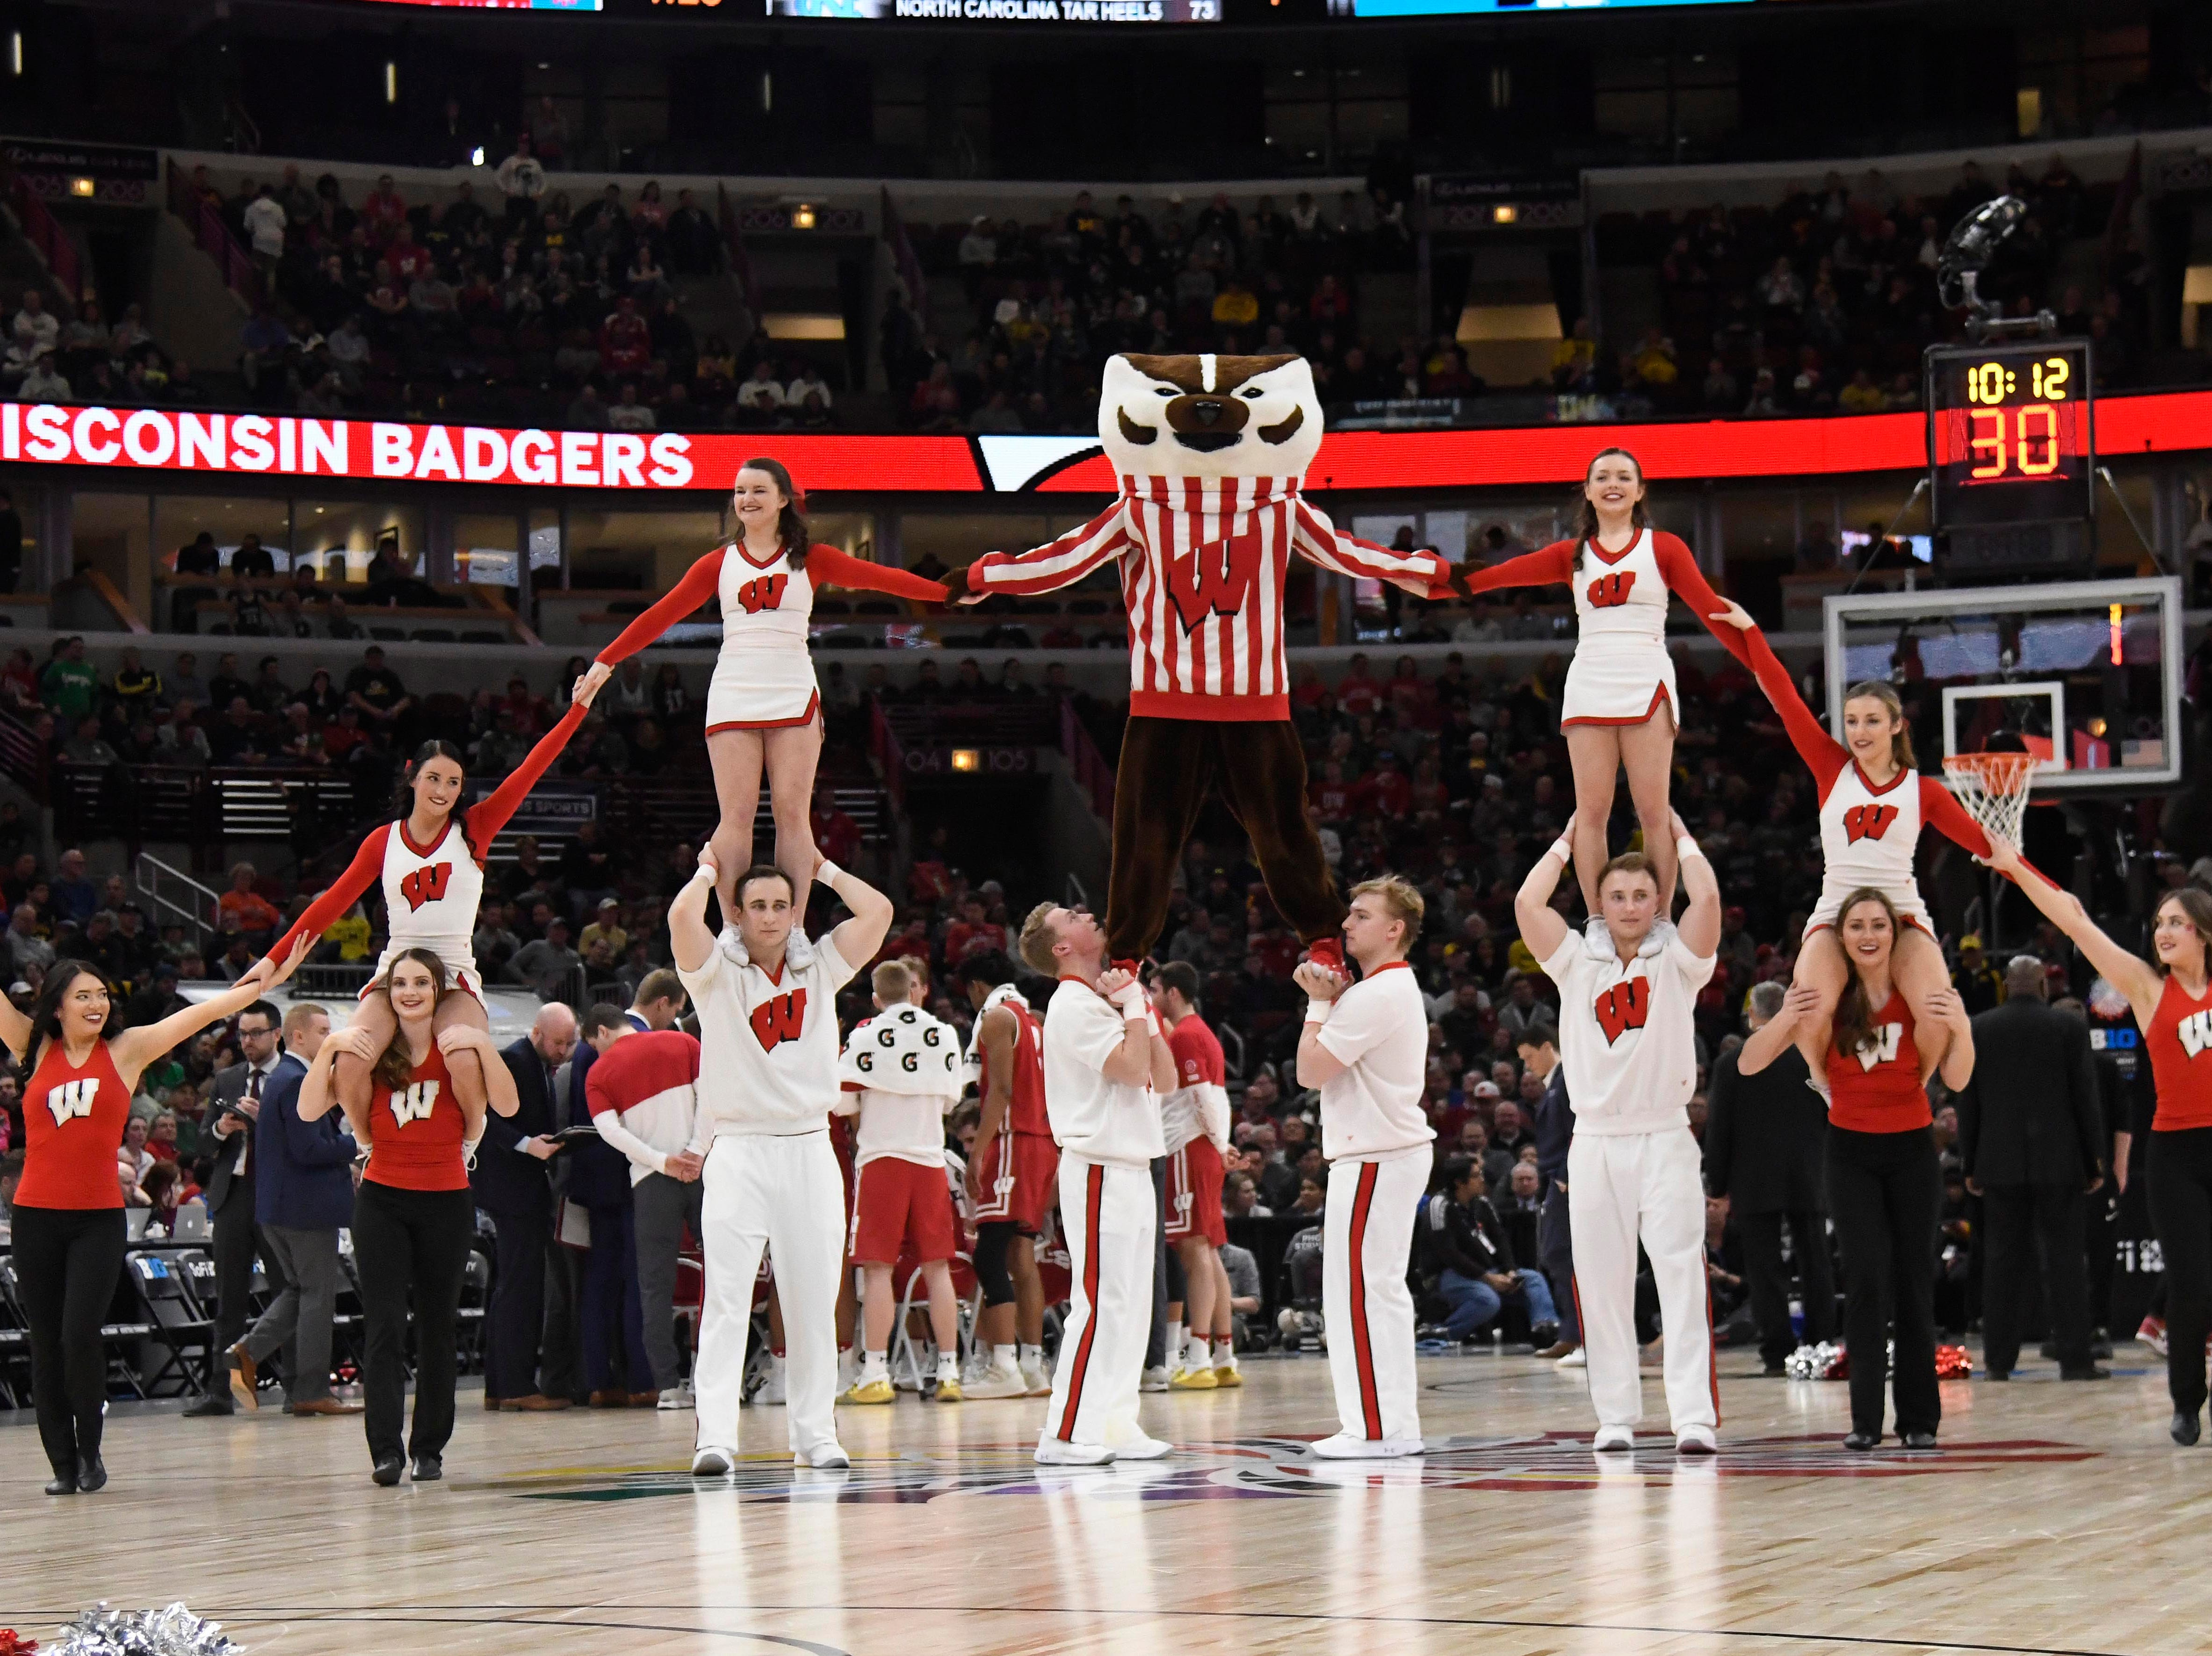 The Wisconsin Badgers cheerleaders perform during a stoppage in play in the second half in the Big Ten conference tournament against the Michigan State Spartans at United Center.